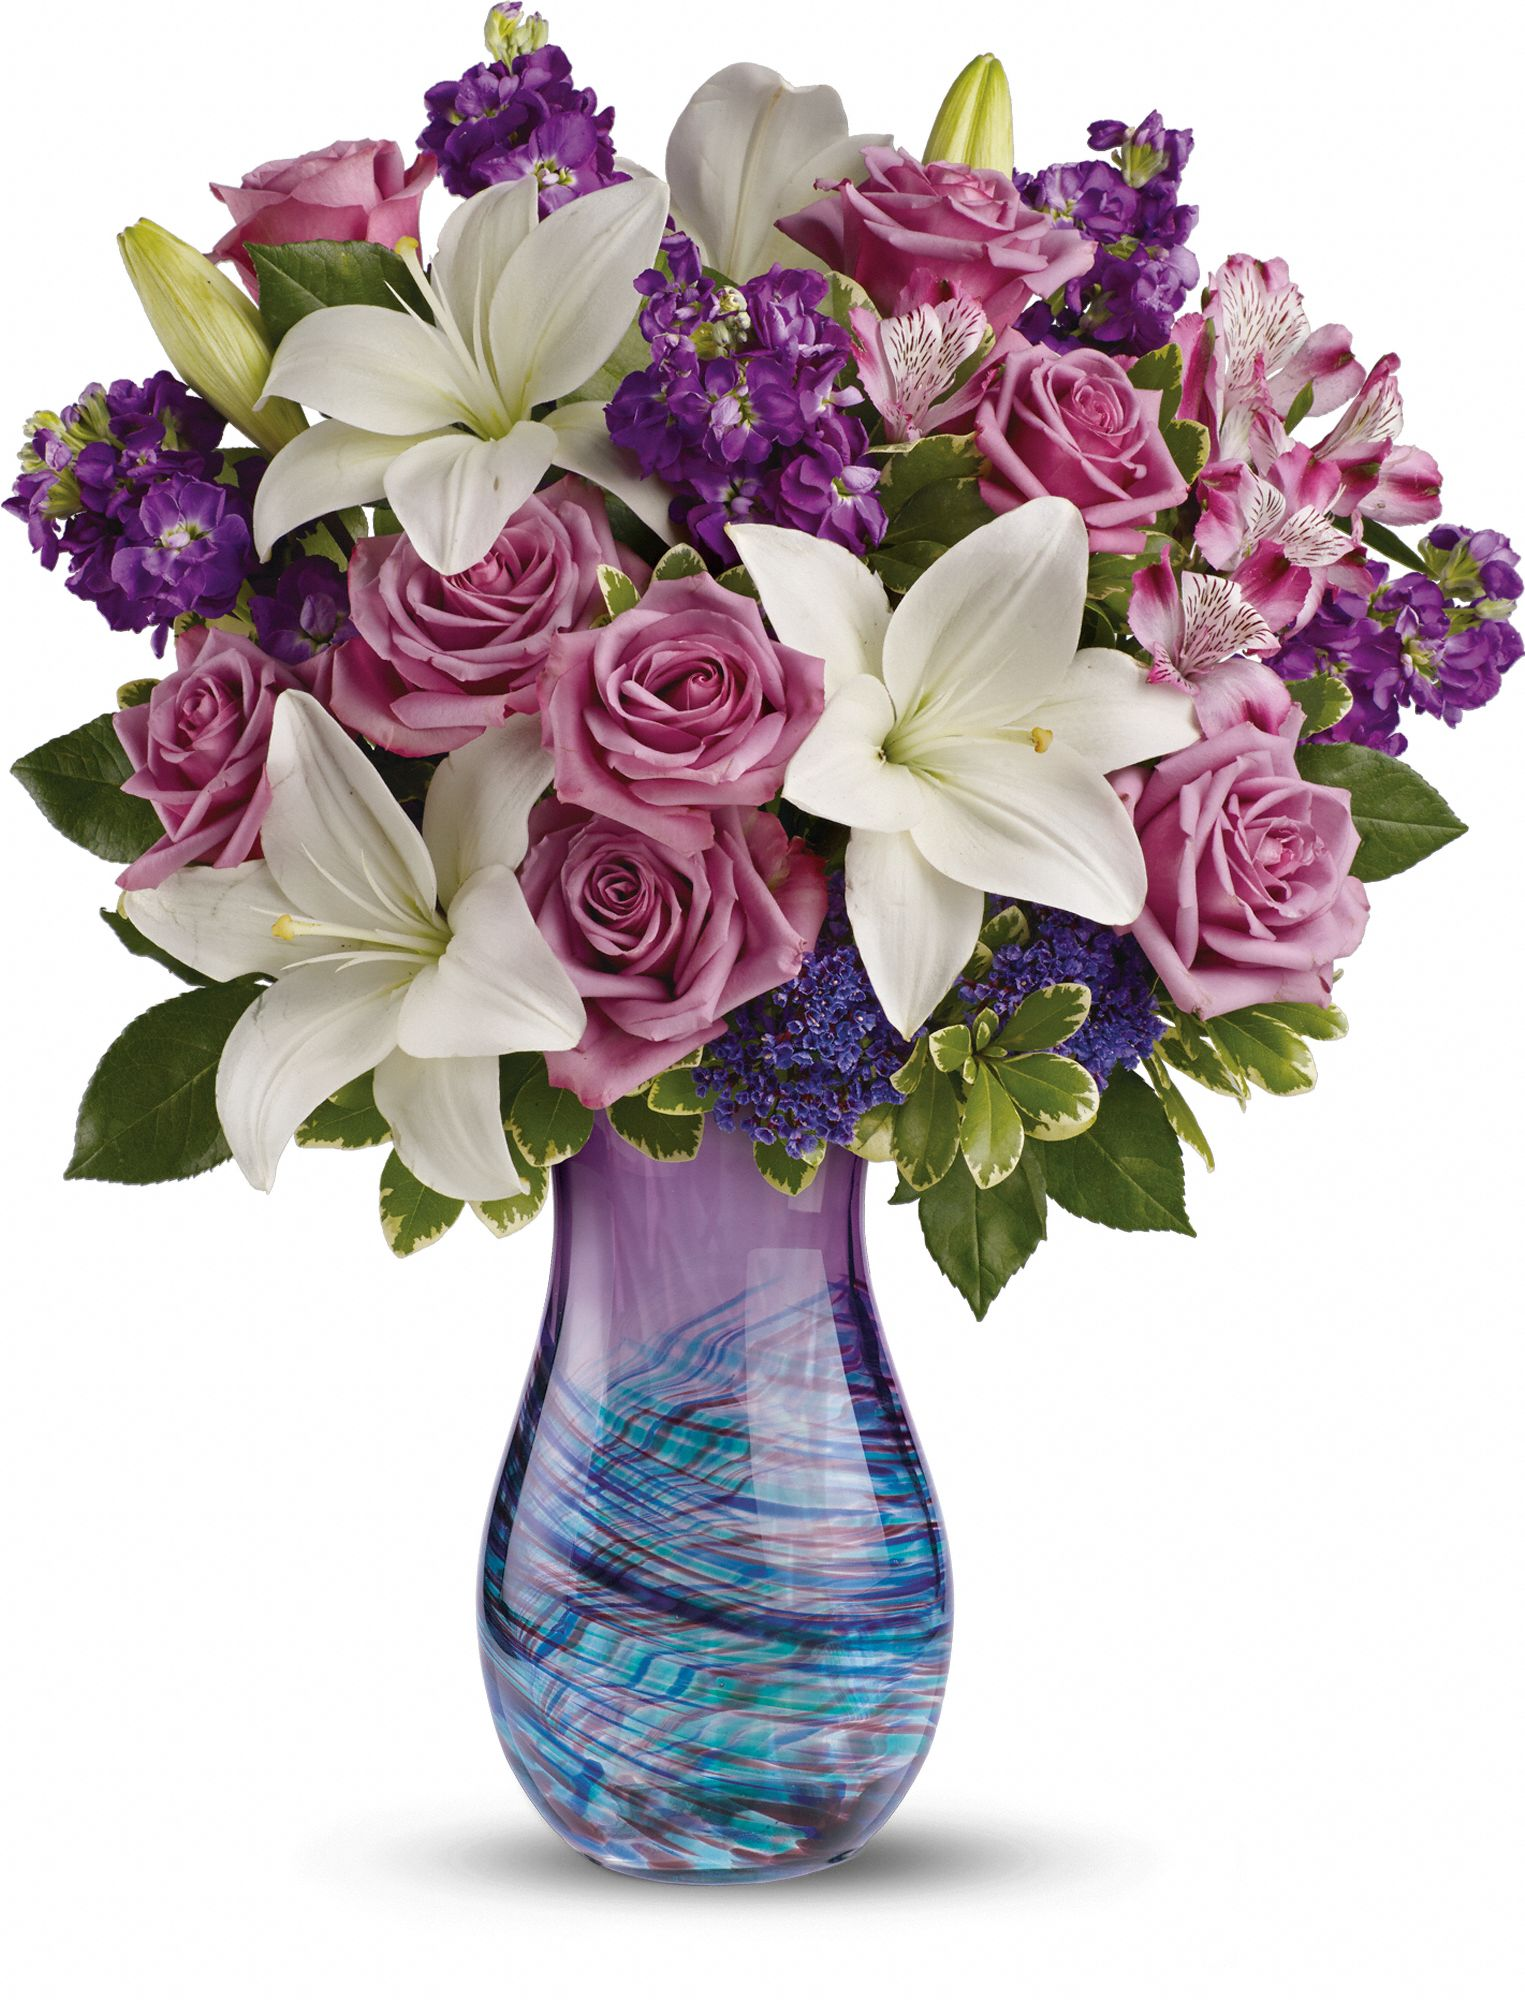 art glass vase and flowers